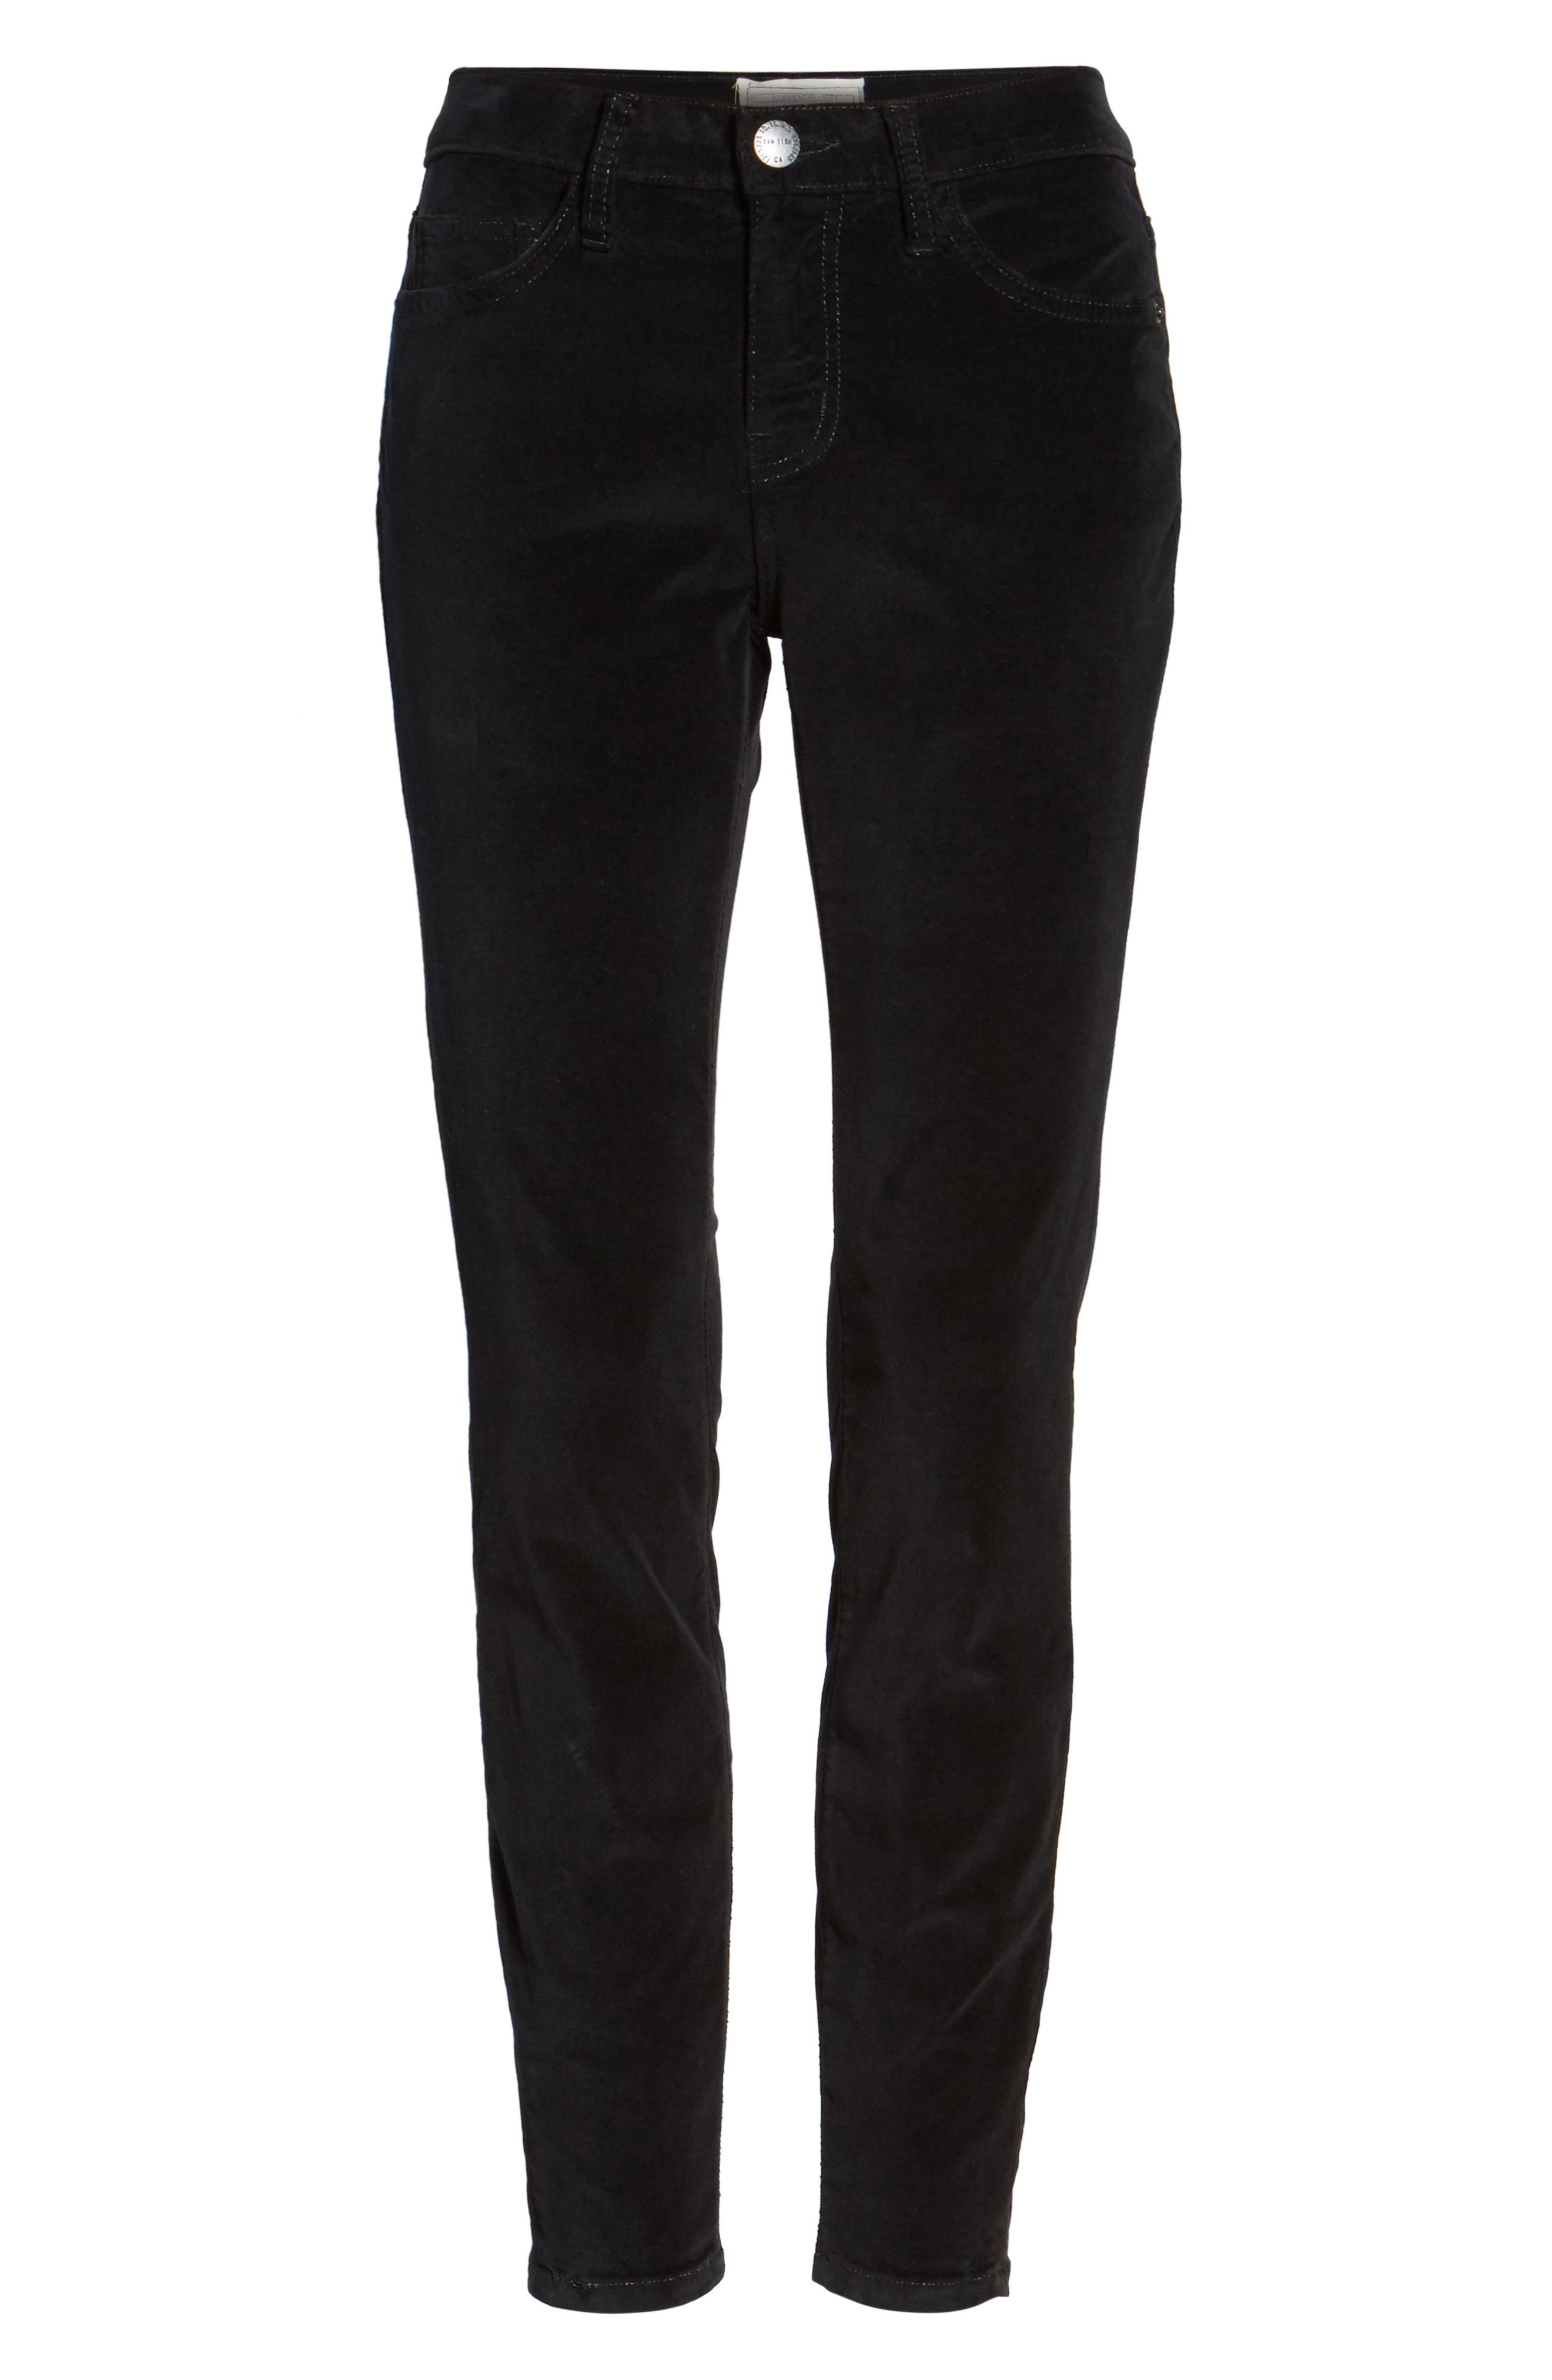 The Stiletto Ankle Skinny Pants,                             Alternate thumbnail 6, color,                             Jet Black 2